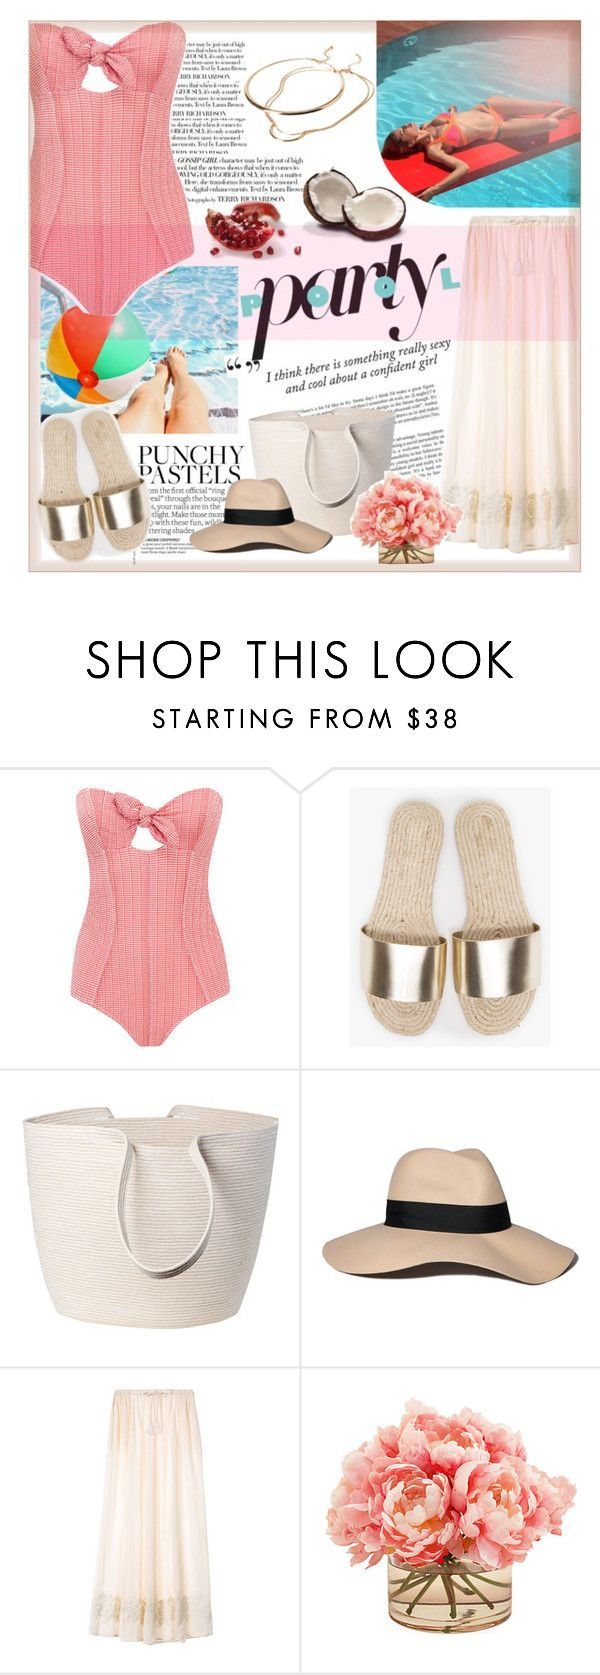 """""""Pool party"""" by viola-vu ❤ liked on Polyvore featuring Doug Johnston, Abercrombie & Fitch, Victoria's Secret, The French Bee, Forever 21, women's clothing, women, female, woman and misses"""